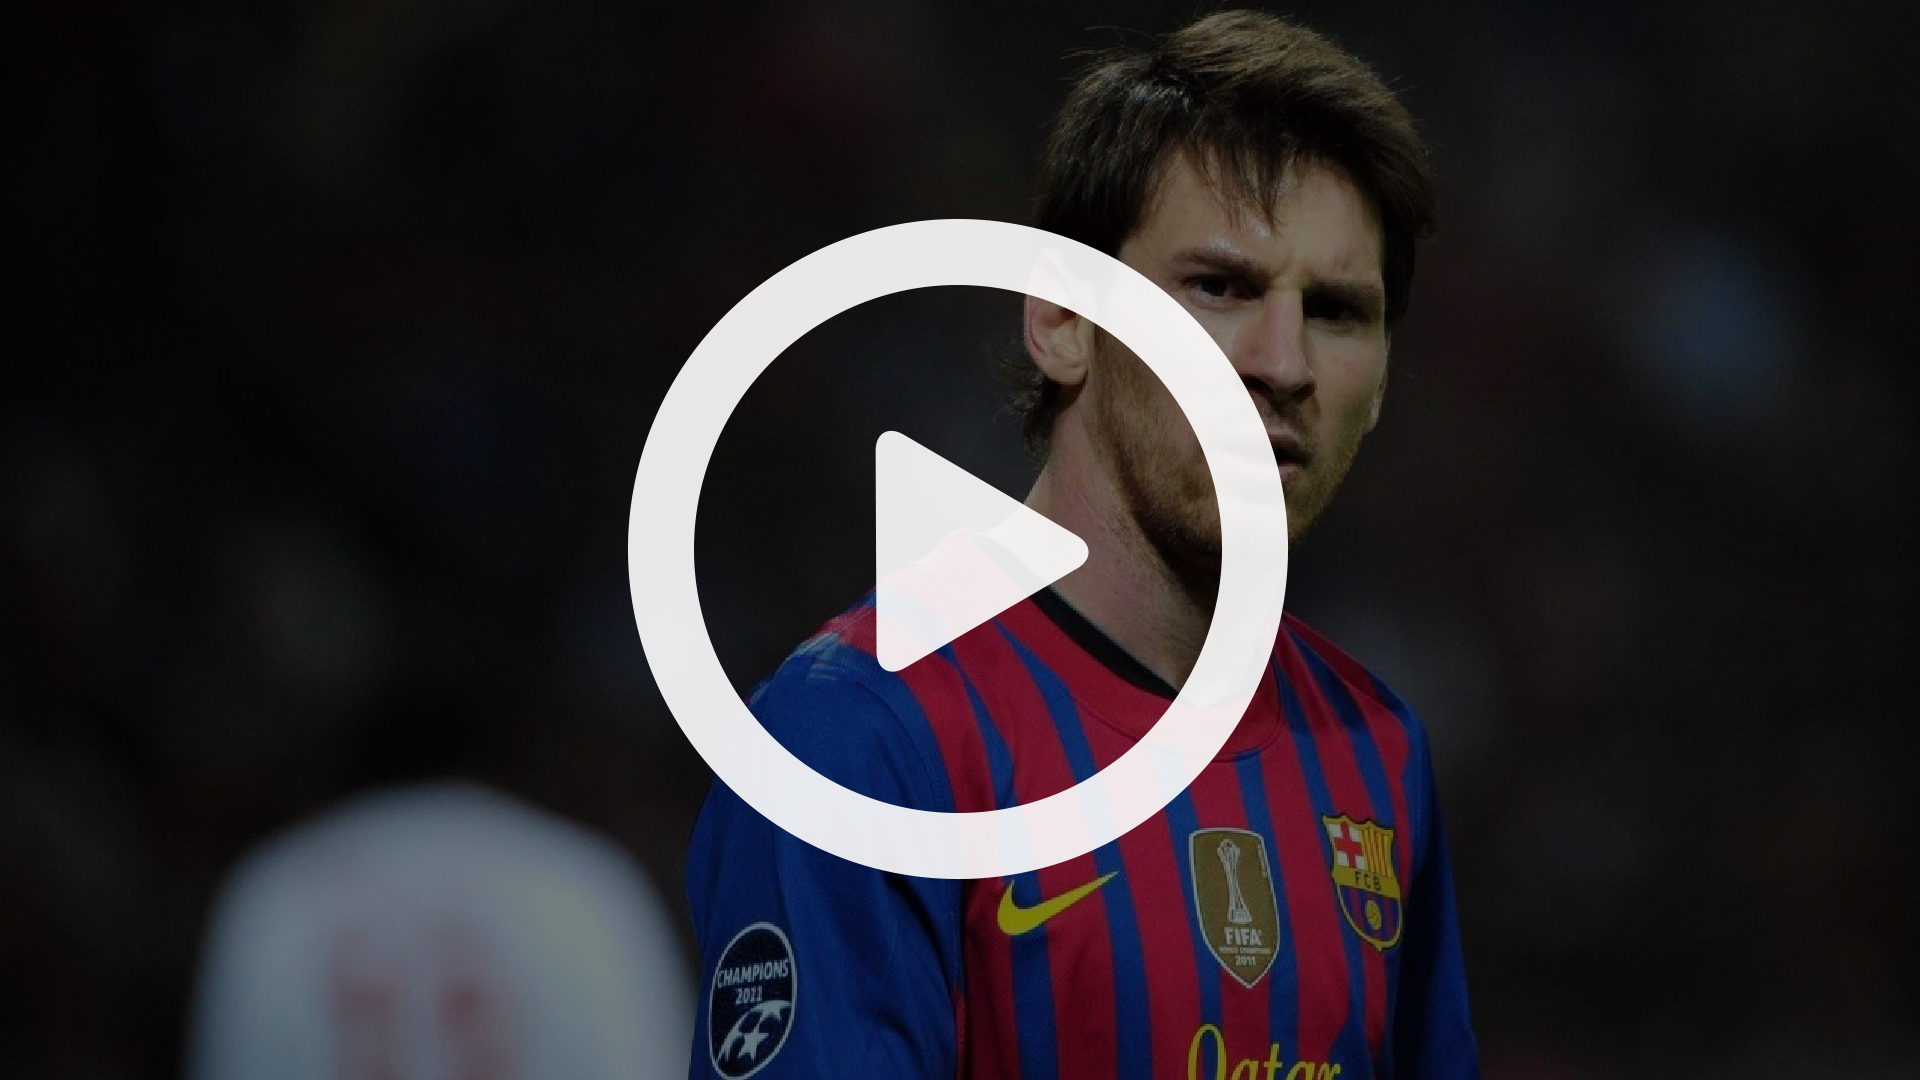 lionel-messi-champions-league-anthem-jalkapallo-puoliaika.com-video-thumb